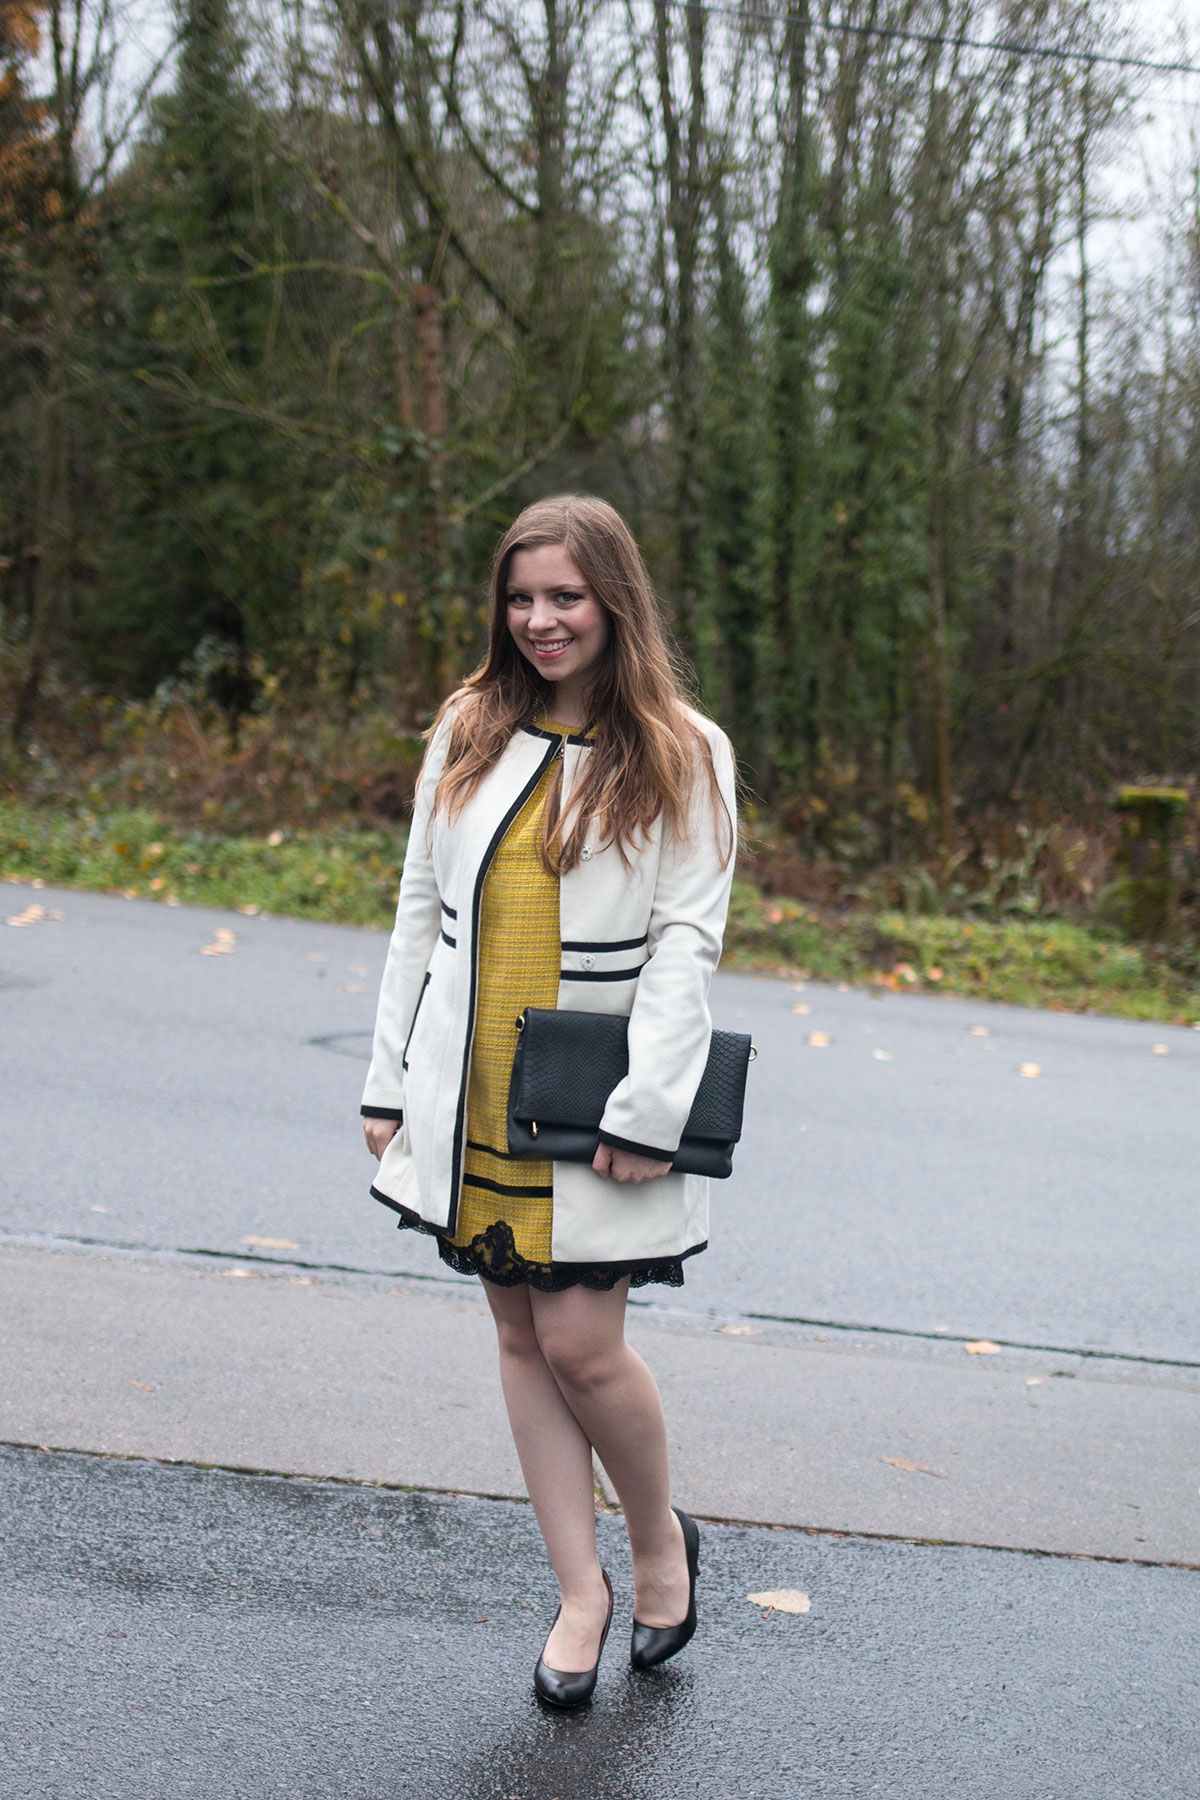 Holiday Party Outfit Ideas: Lattori Yellow Lace Trim Boucle Dress with White Coat // hellorigby.com seattle fashion blog